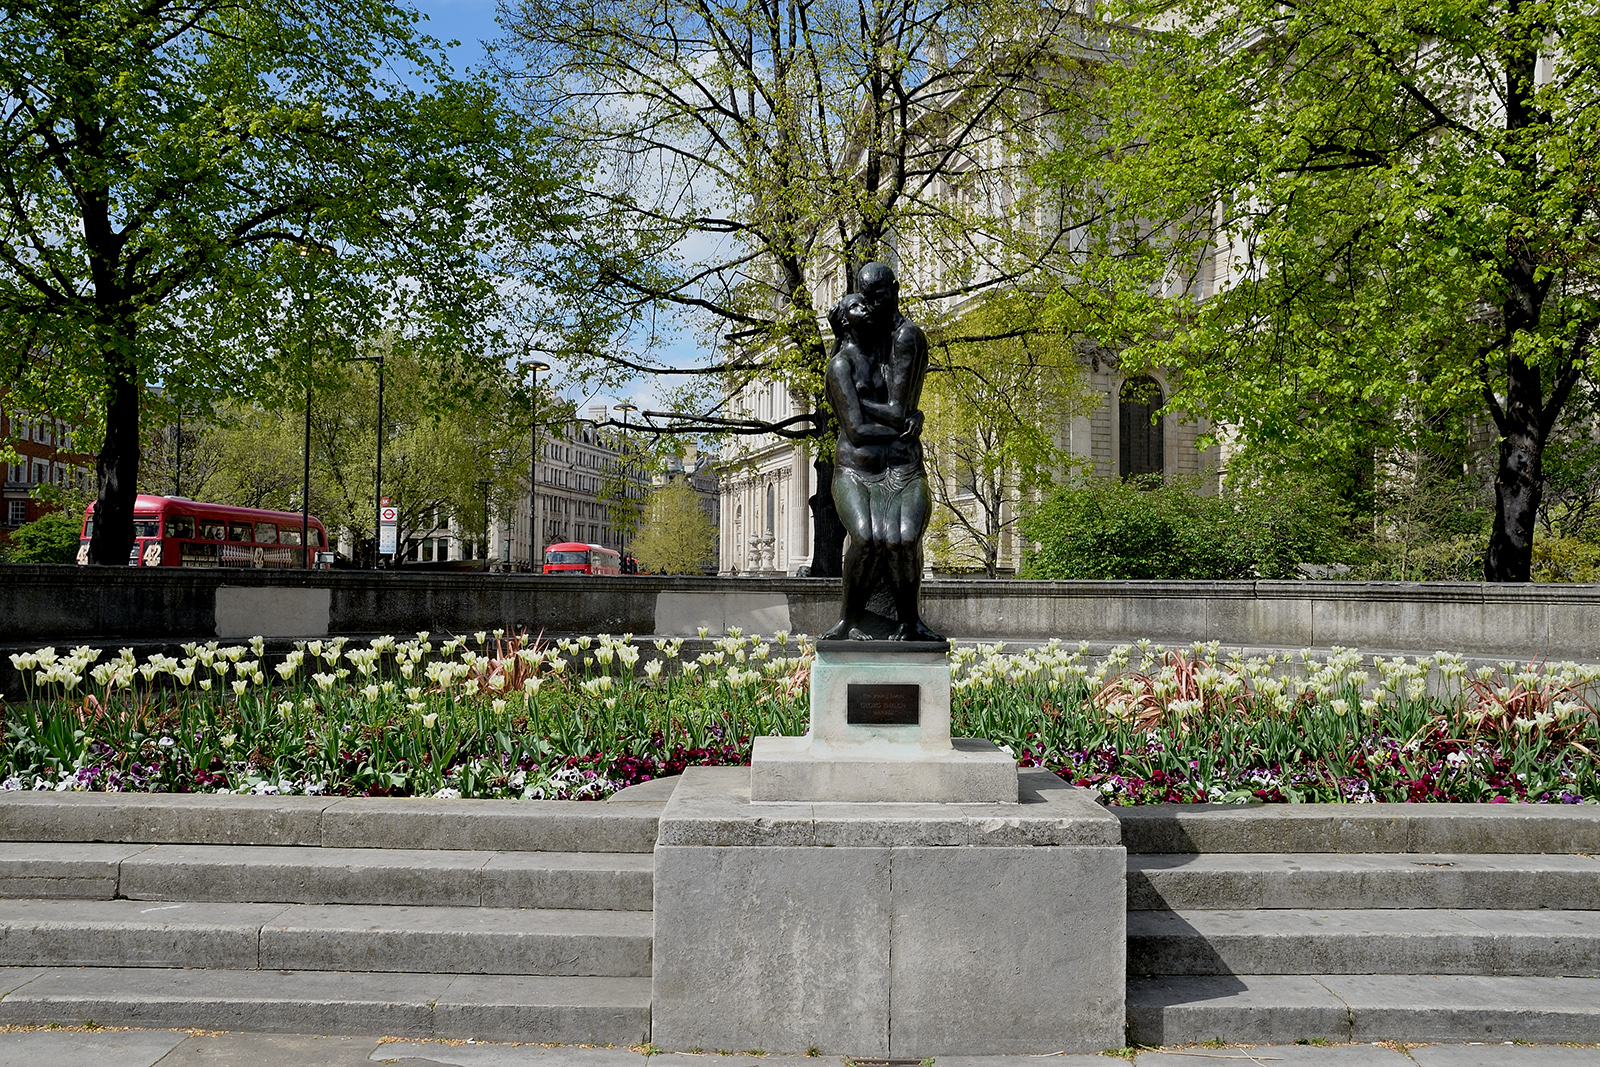 20170416_City-of-London_New-Change-Cannon-Street_Festival-gardens-with-statue-The-Lovers